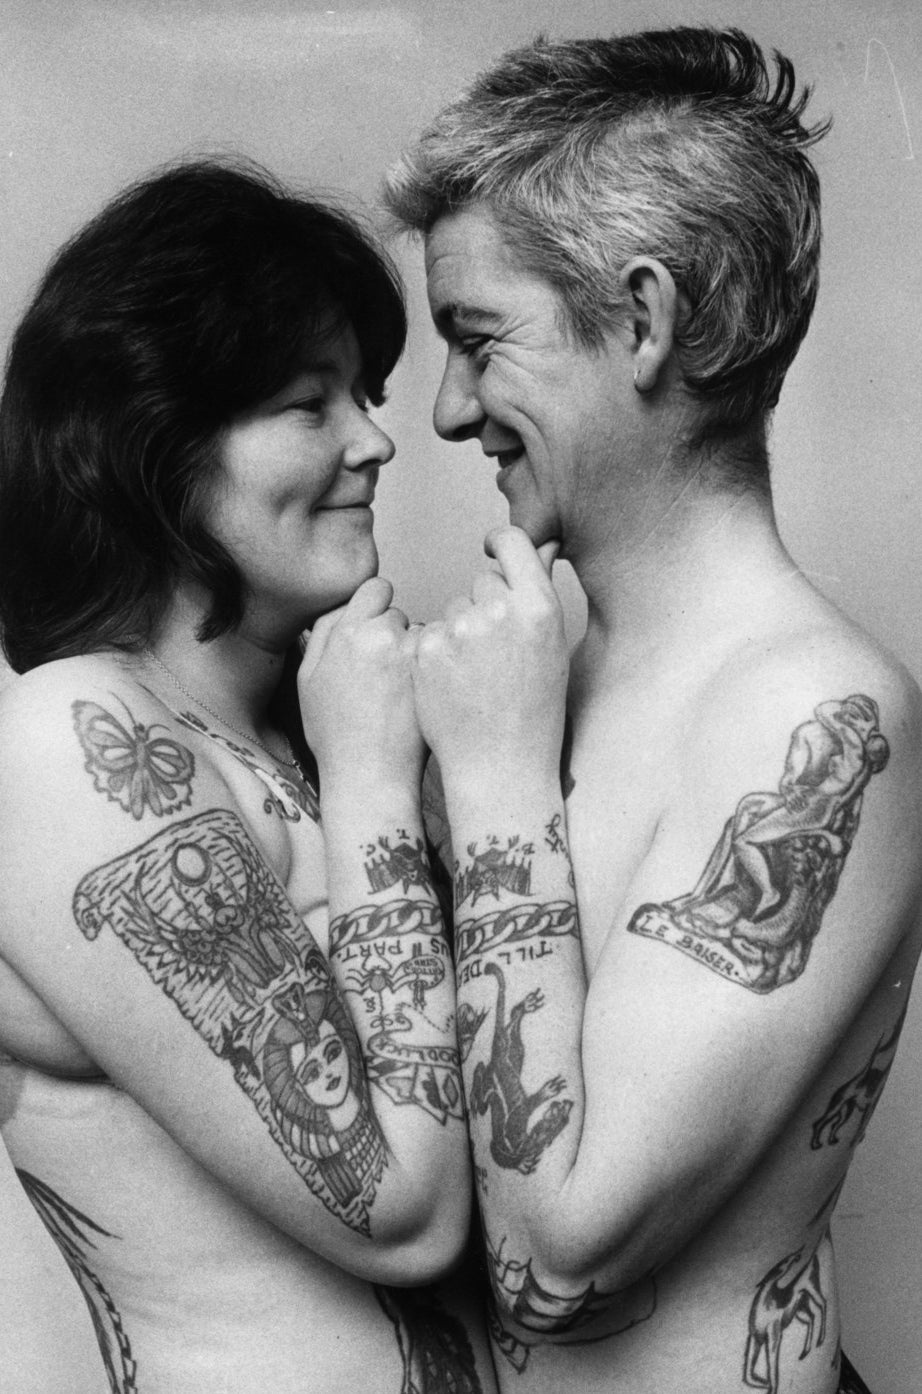 Ivor and Marianne Collier, display their mutual adoration and taste for tattooes. 1972.